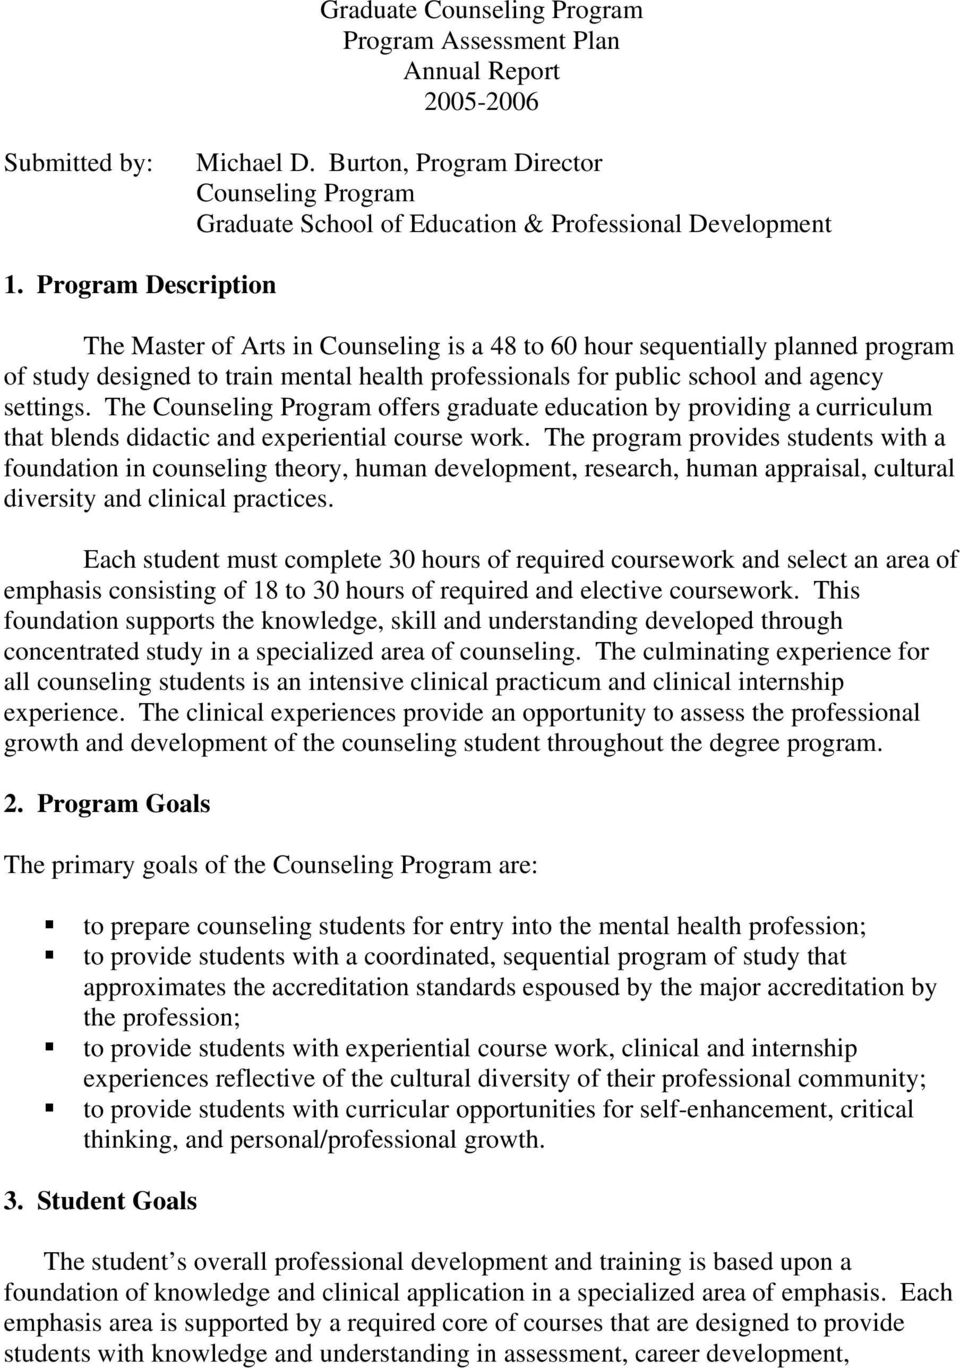 The Counseling Program offers graduate education by providing a curriculum that blends didactic and experiential course work.